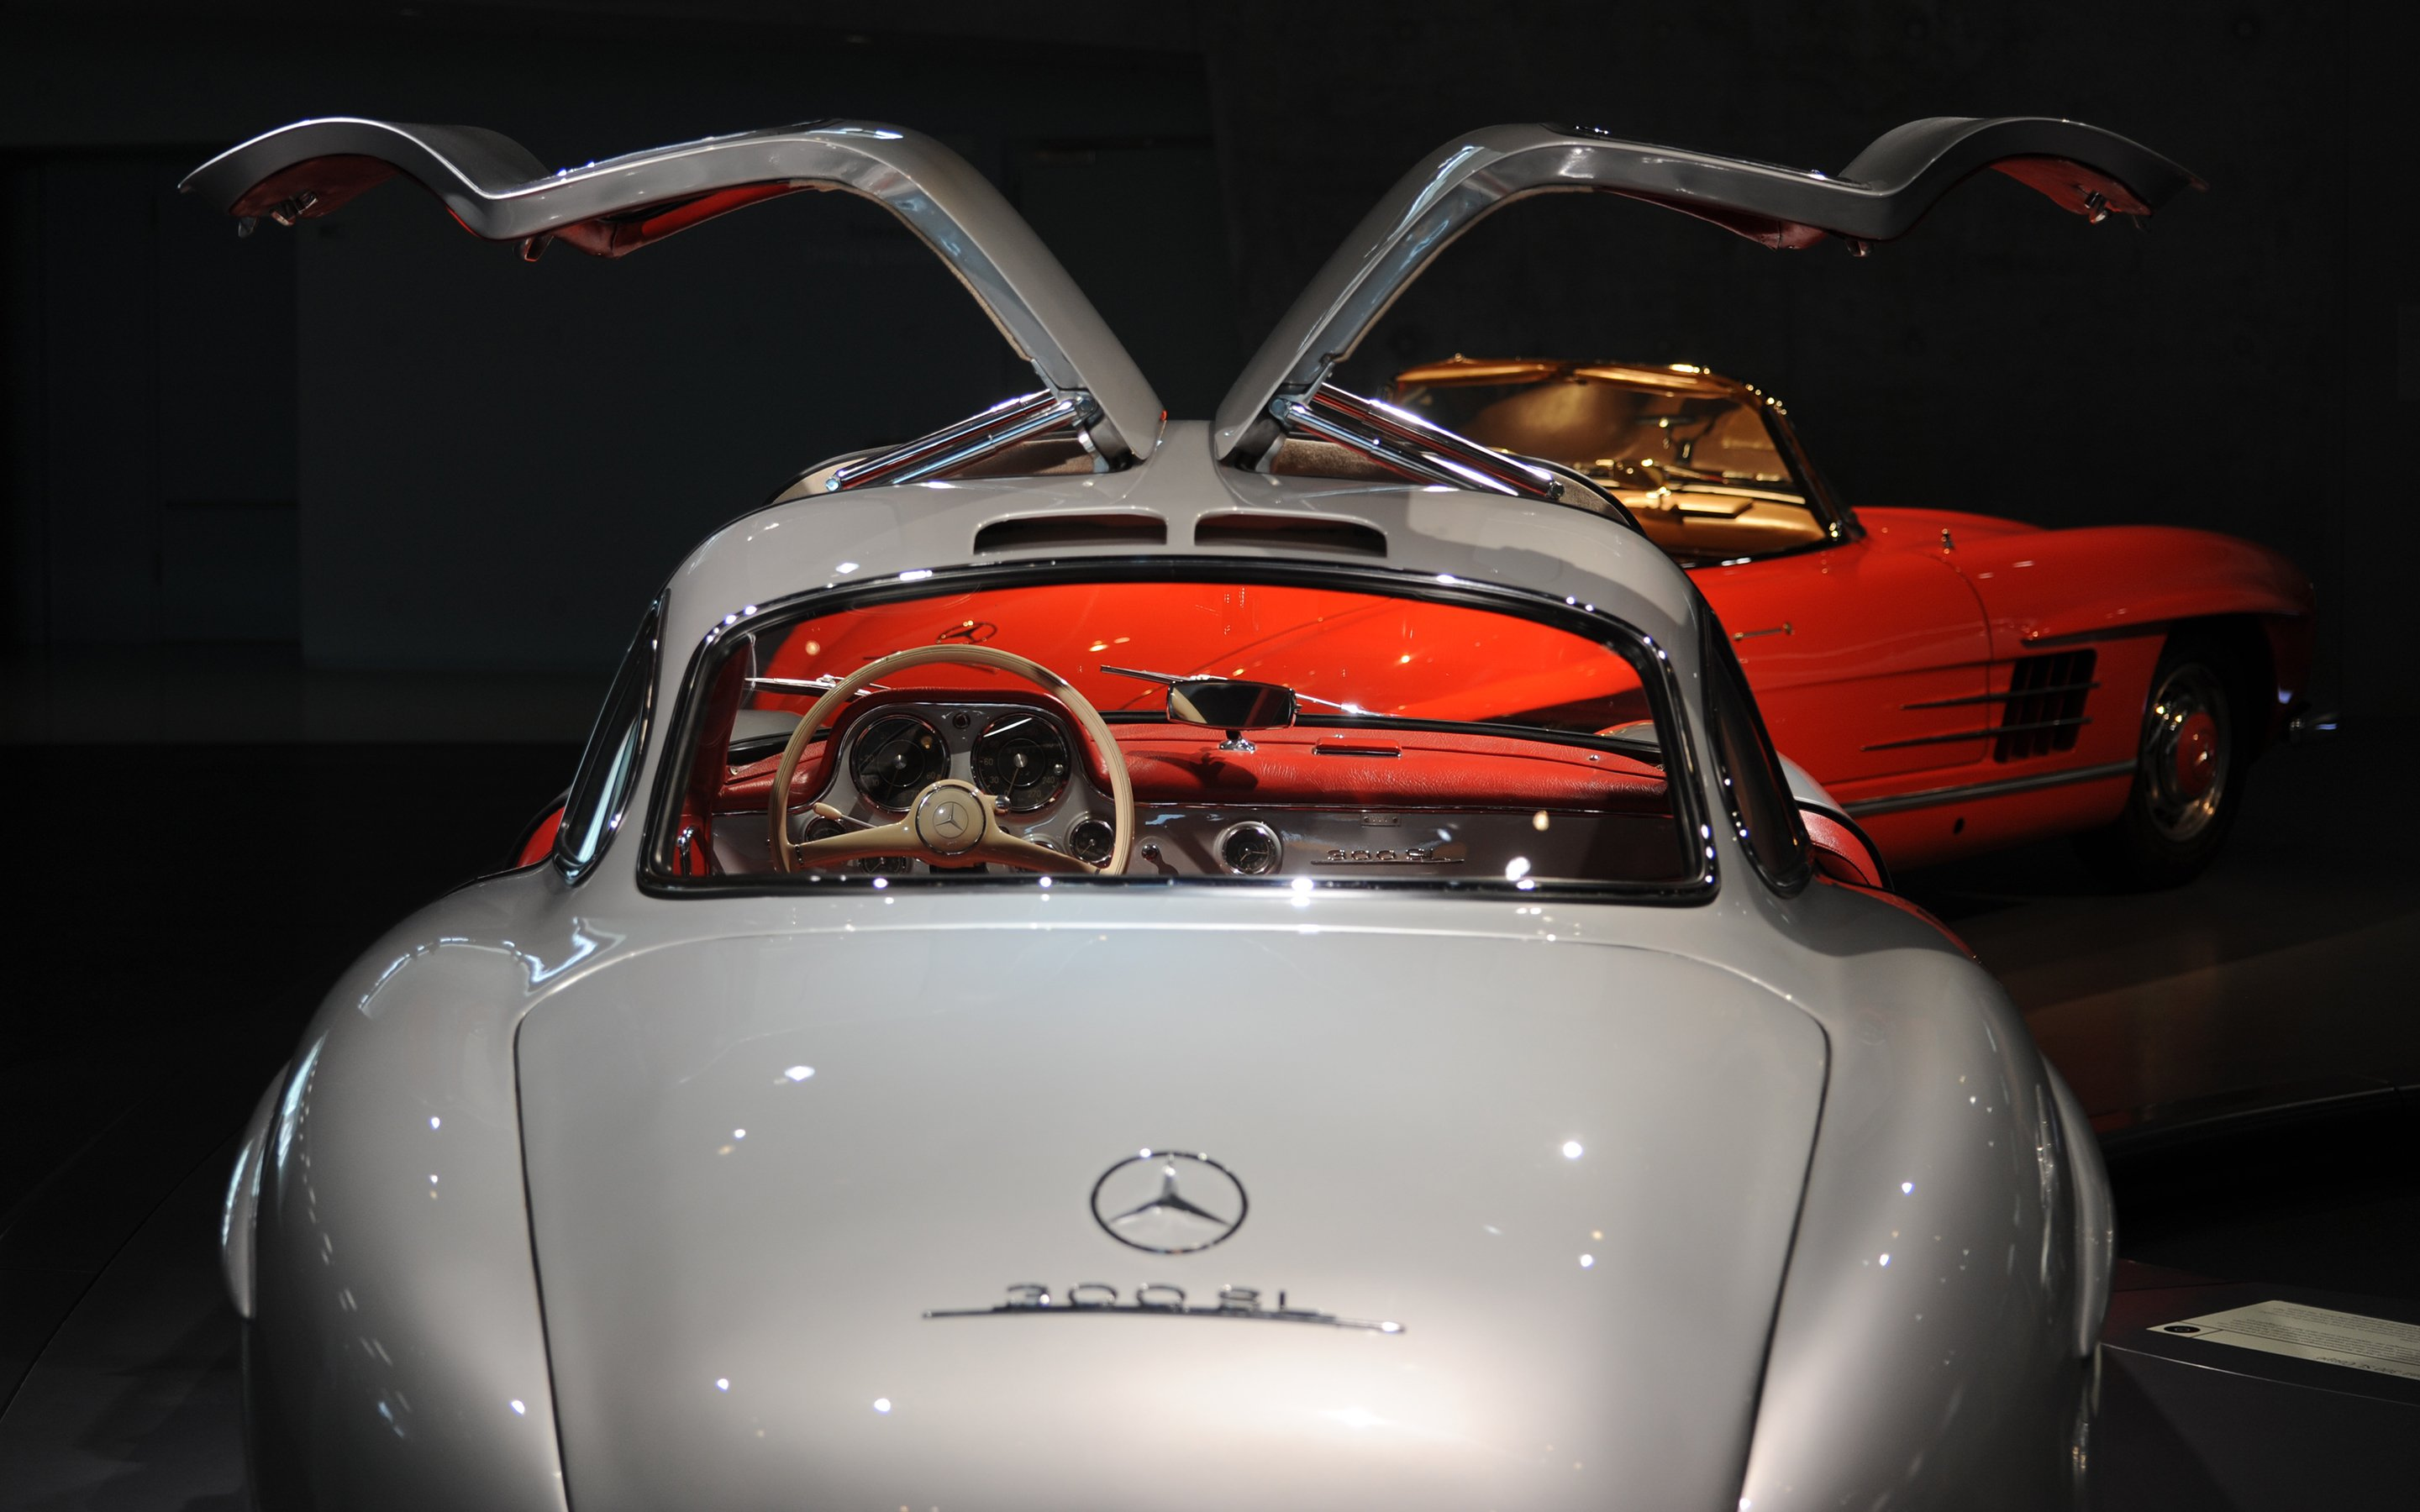 Mercedes benz stuttgart edu options germany for Mercedes benz classic center germany